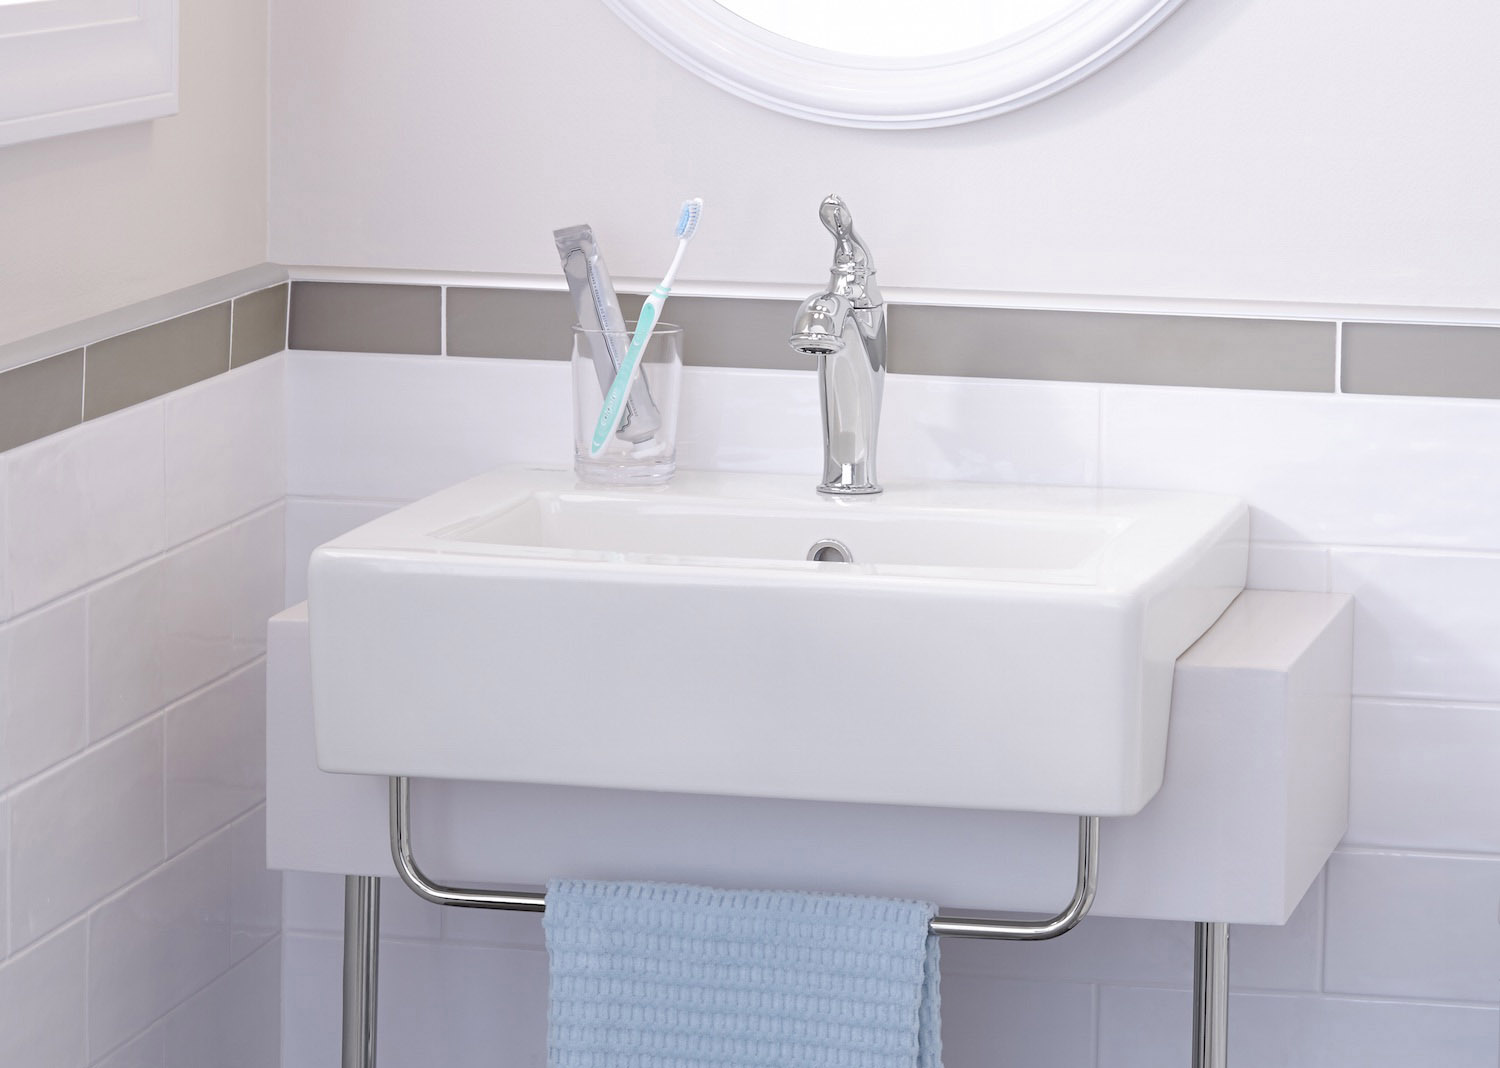 American Standard Boxe Lav Fits Small Spaces | JLC Online | Bath ...